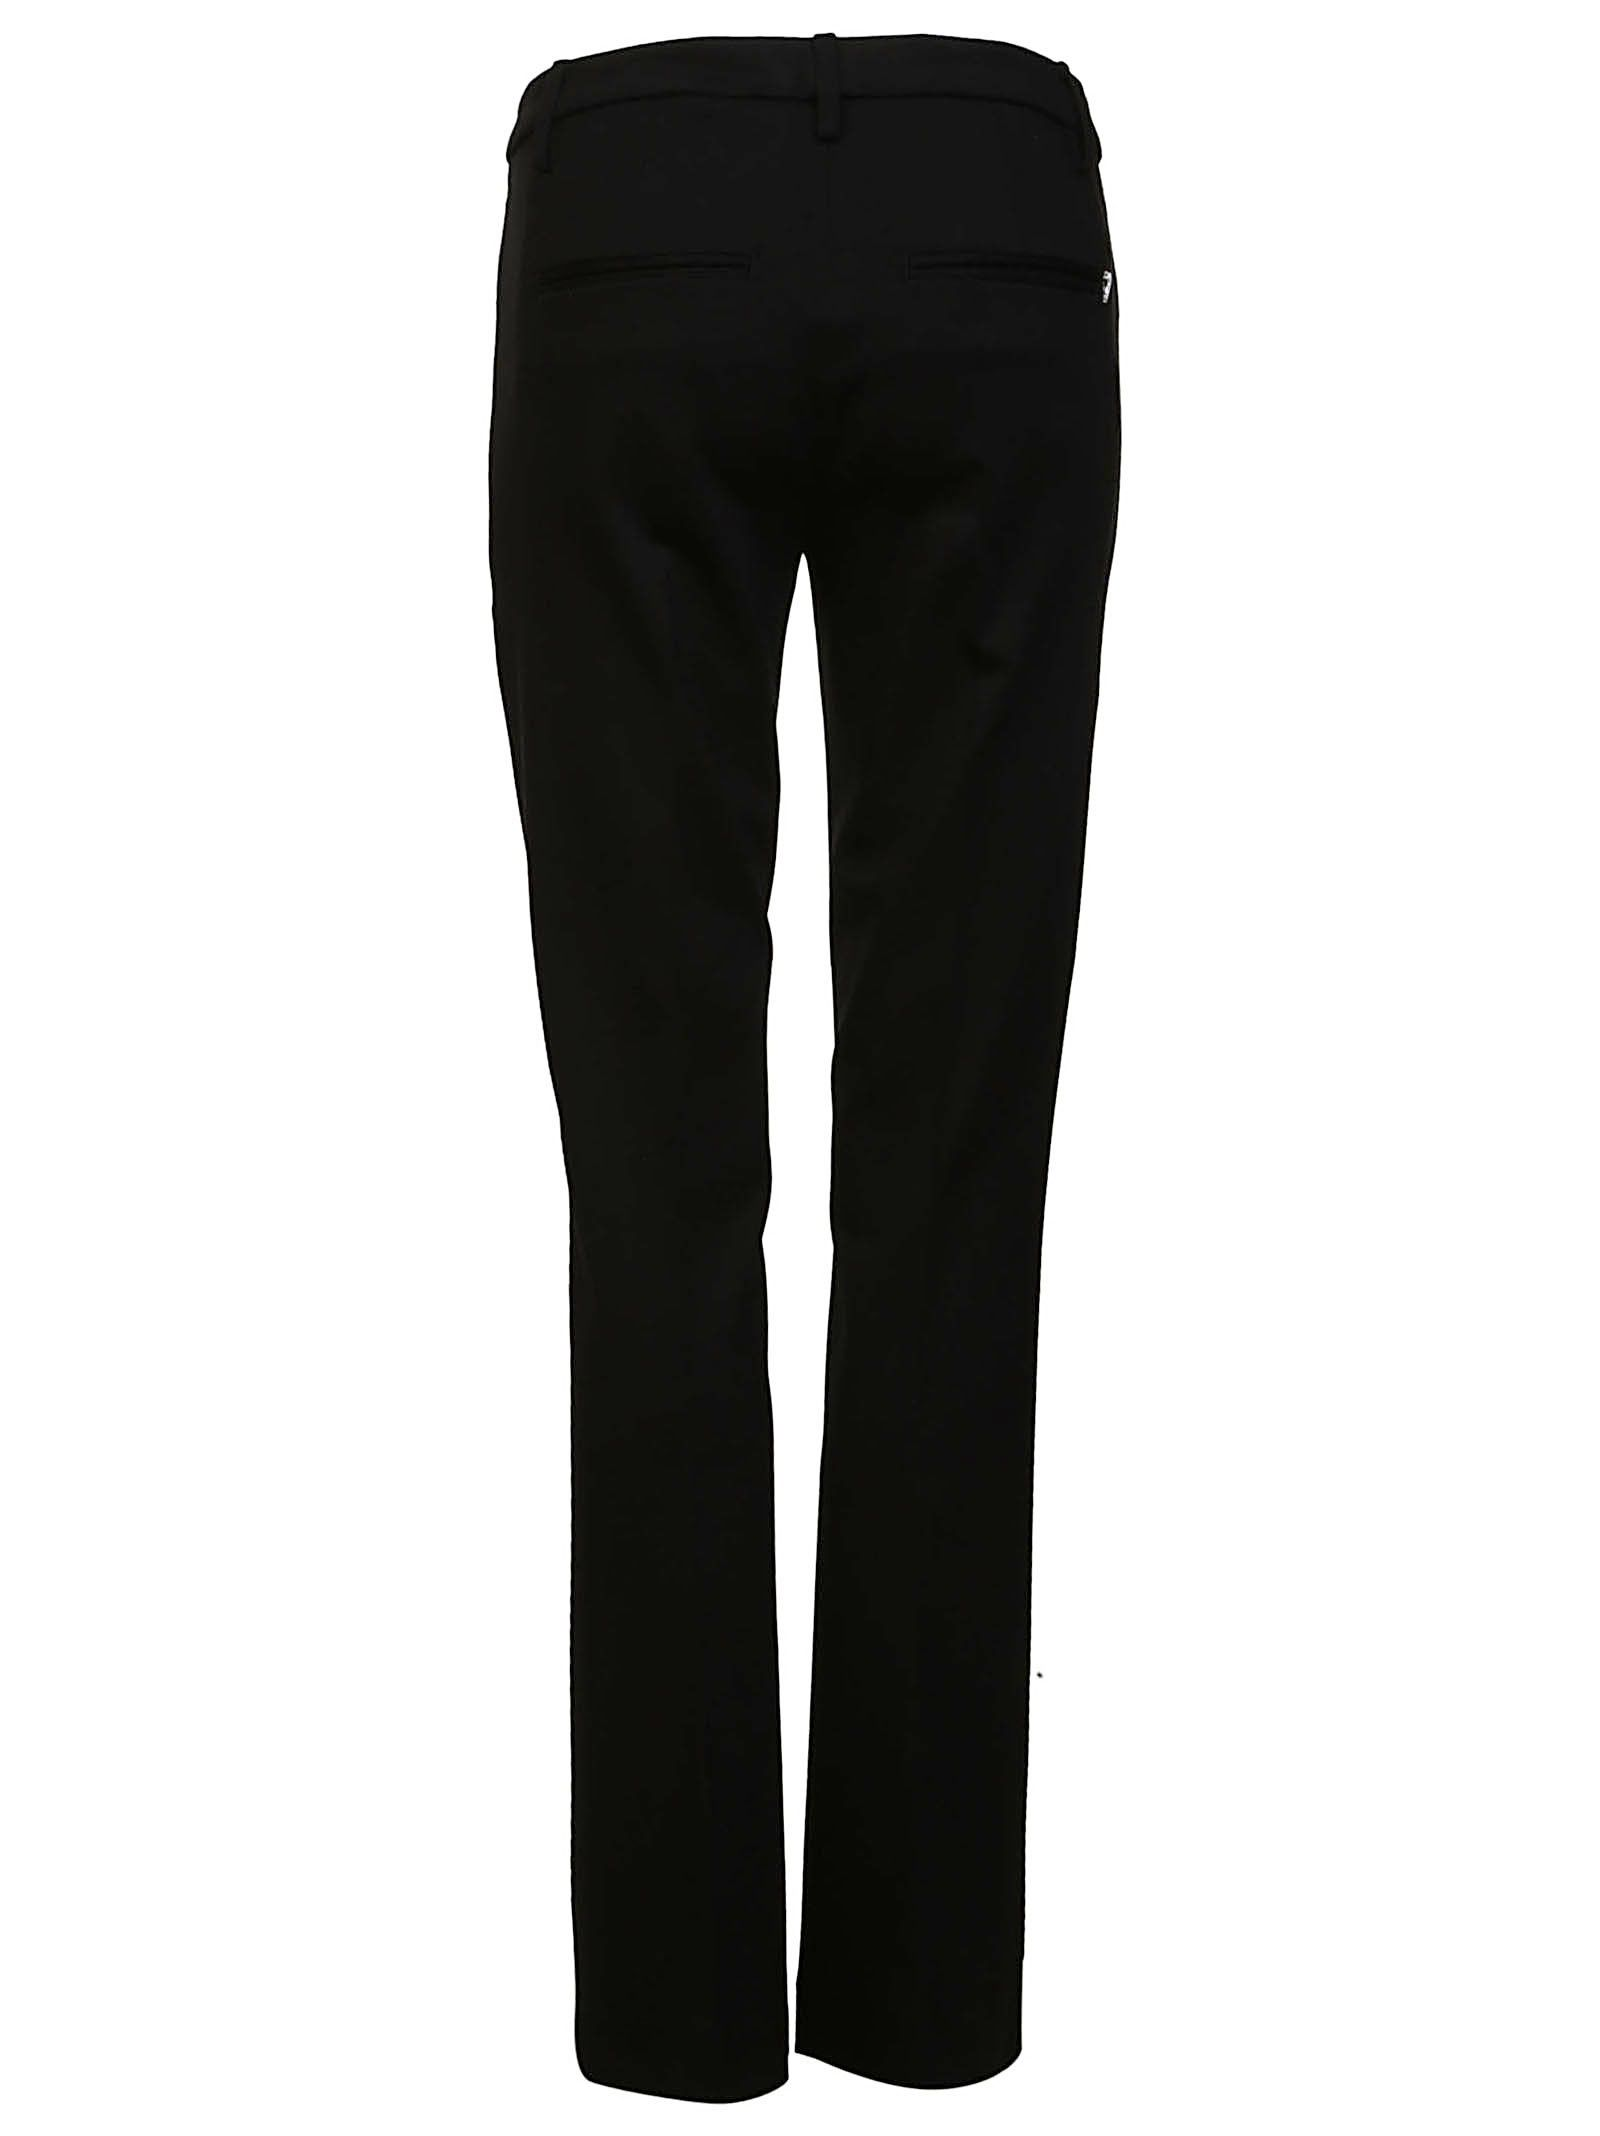 Pants for Women On Sale, Silver, viscosa, 2017, 26 Dondup